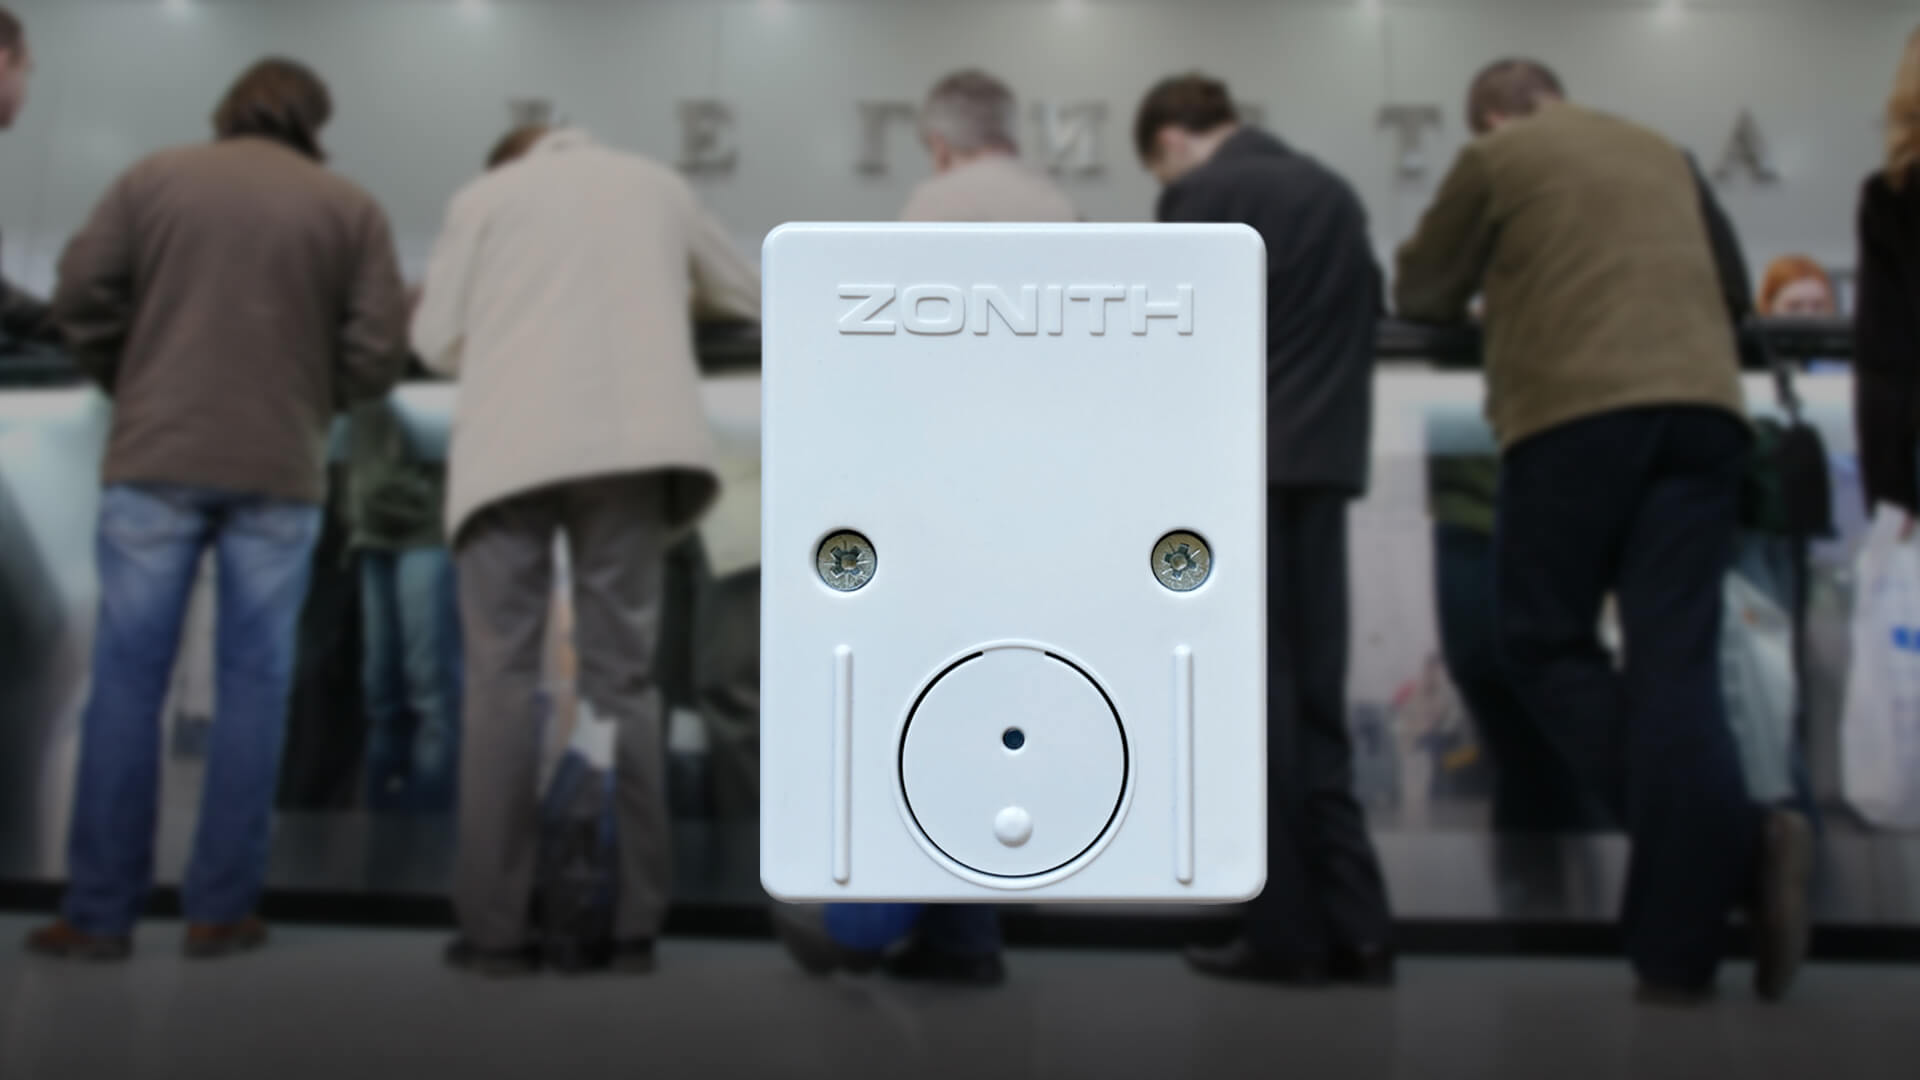 ZONITH Bluetooth Panic Button